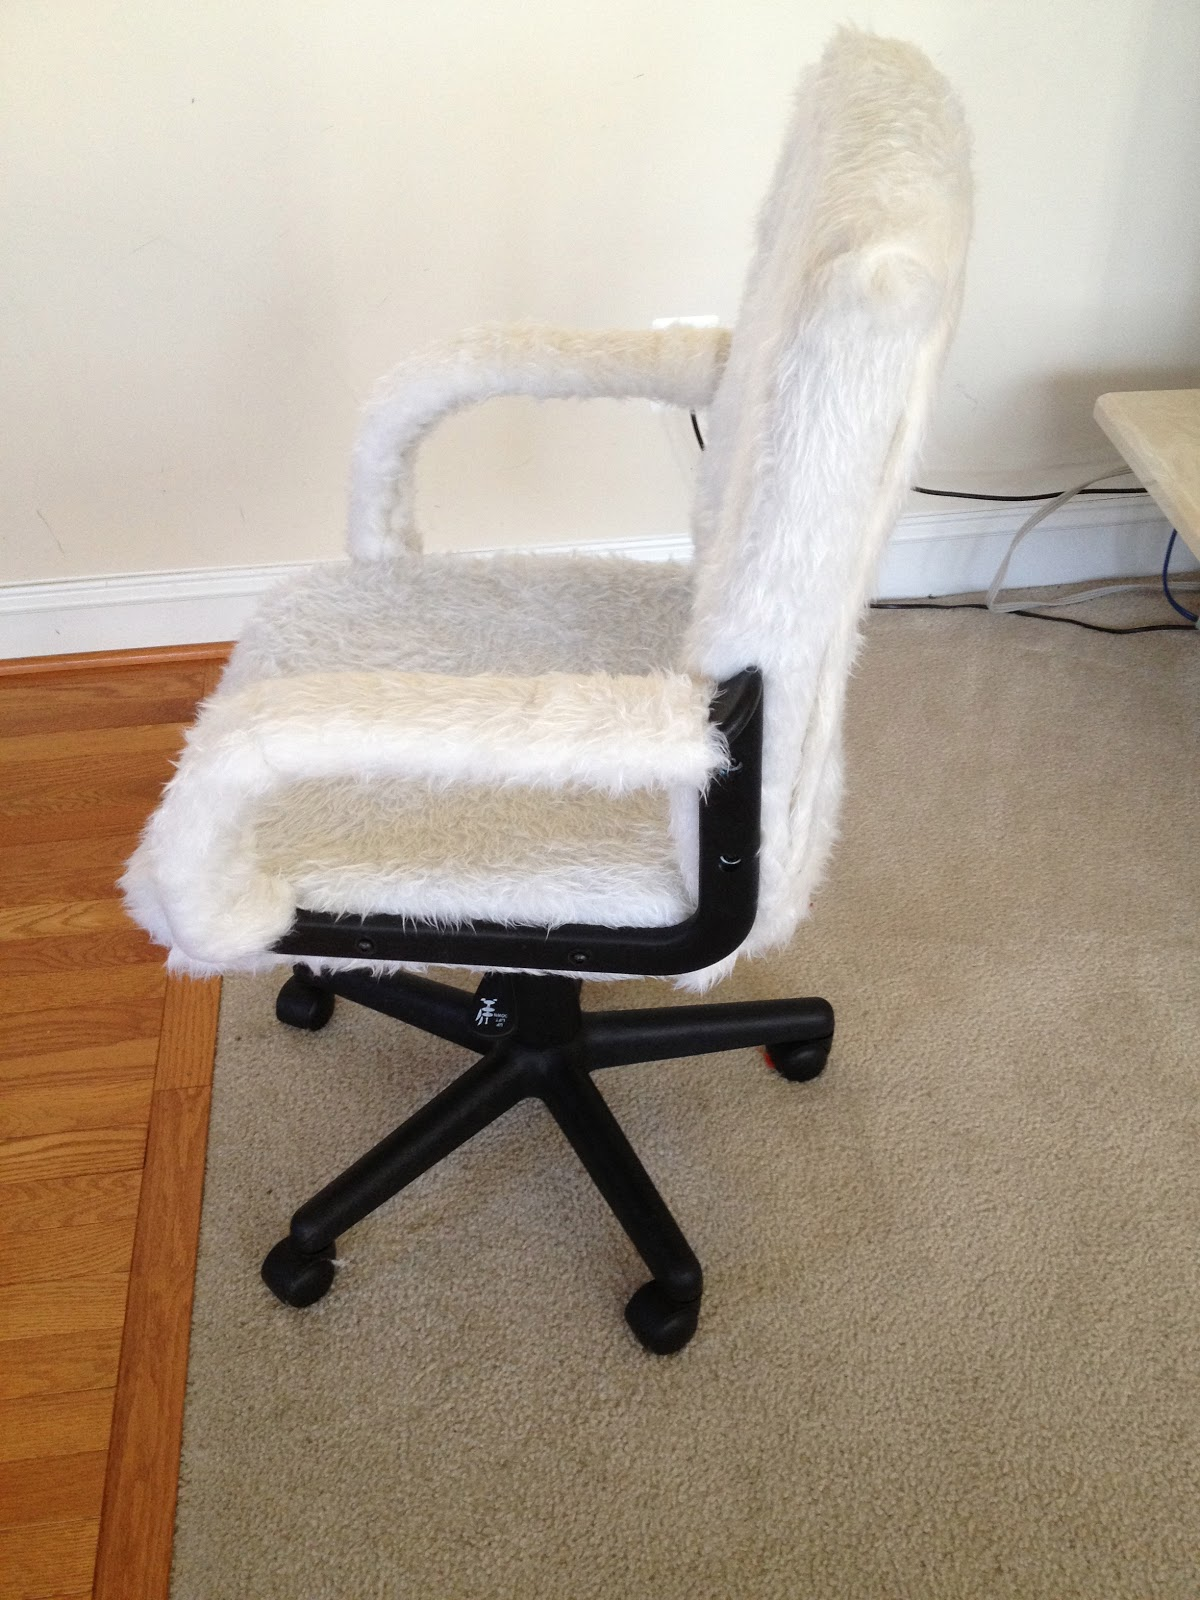 reupholstering an office chair. reupholster an office chair reupholstering an office chair